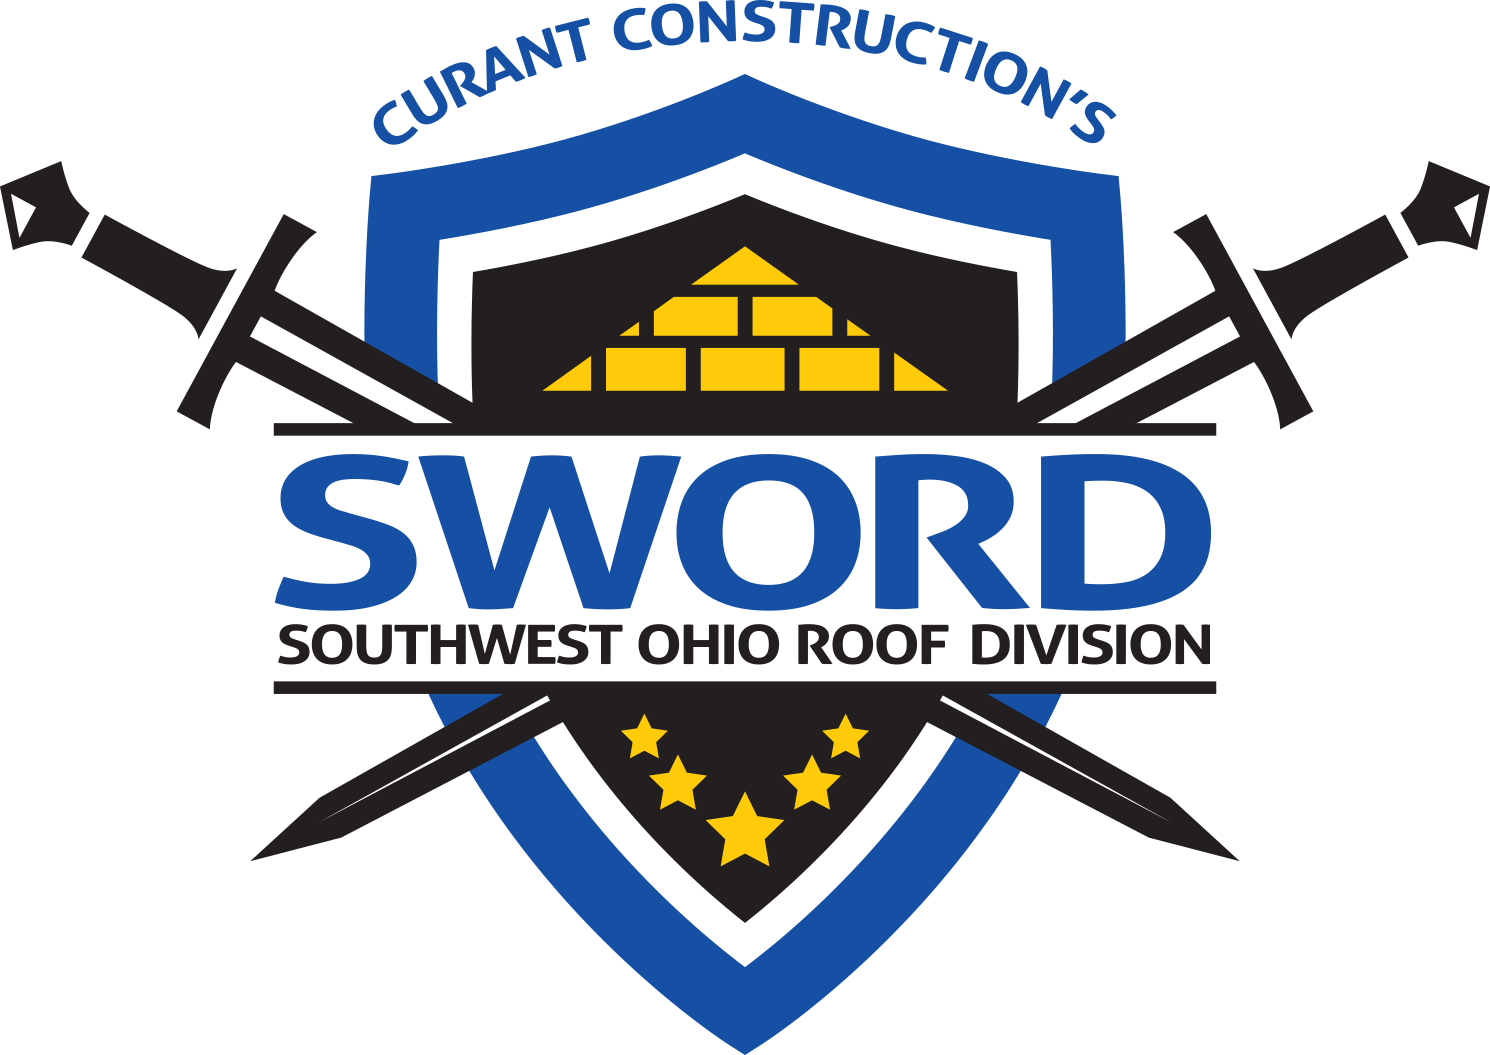 Curant Construction's - SouthWest Ohio Roof Division Logo